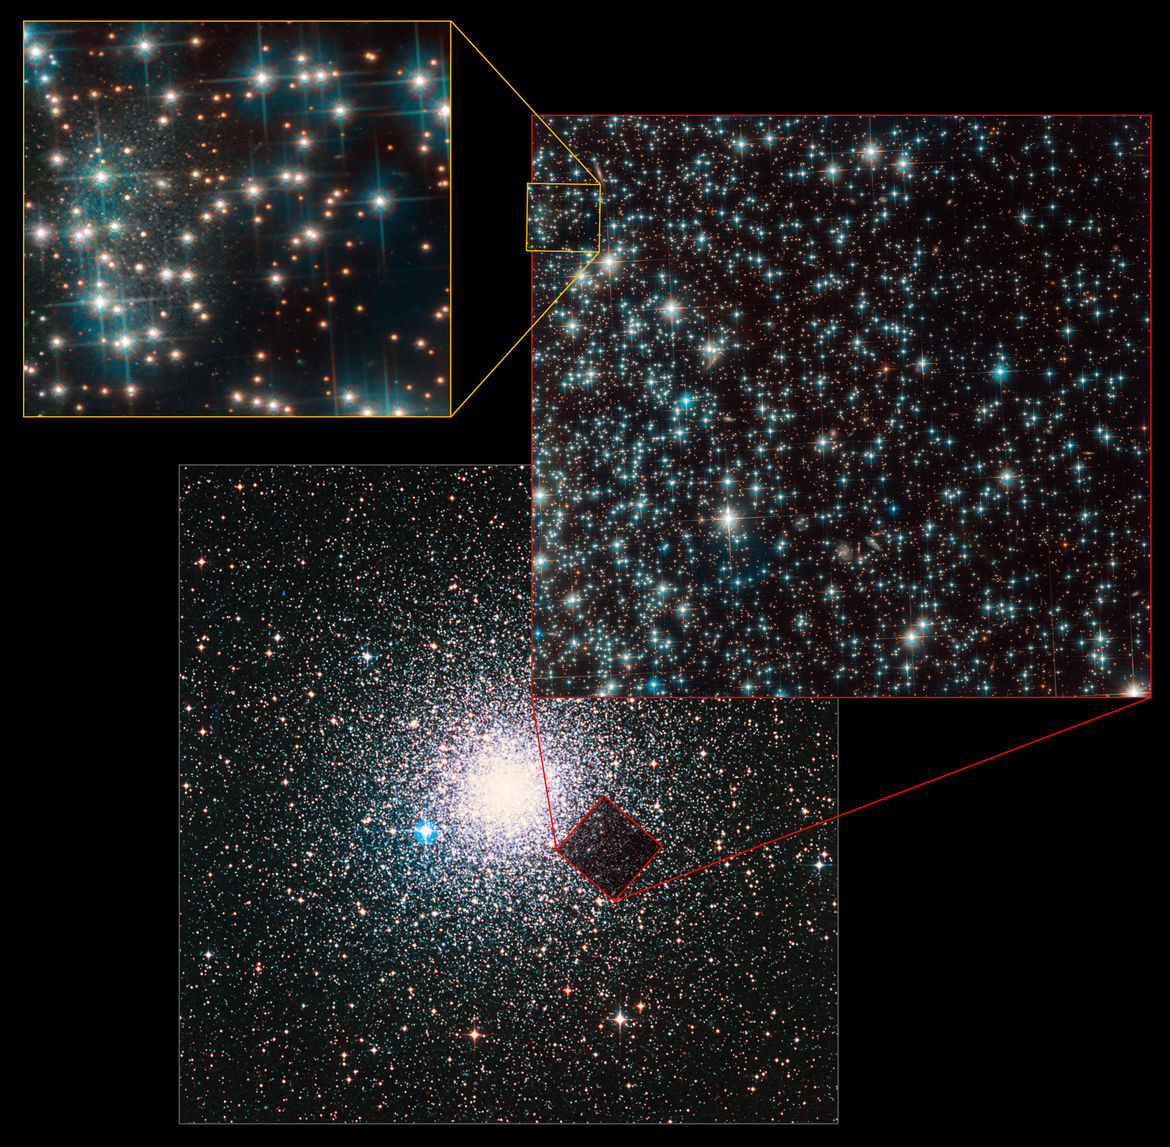 The globular cluster NGC 6752 (bottom), when observed near its core with Hubble (right), reveals it's hiding a very dim dwarf galaxy (upper left). Credit: NASA, ESA, L. Bedin (Astronomical Observatory of Padua, Italy), and Digitized Sky Survey 2